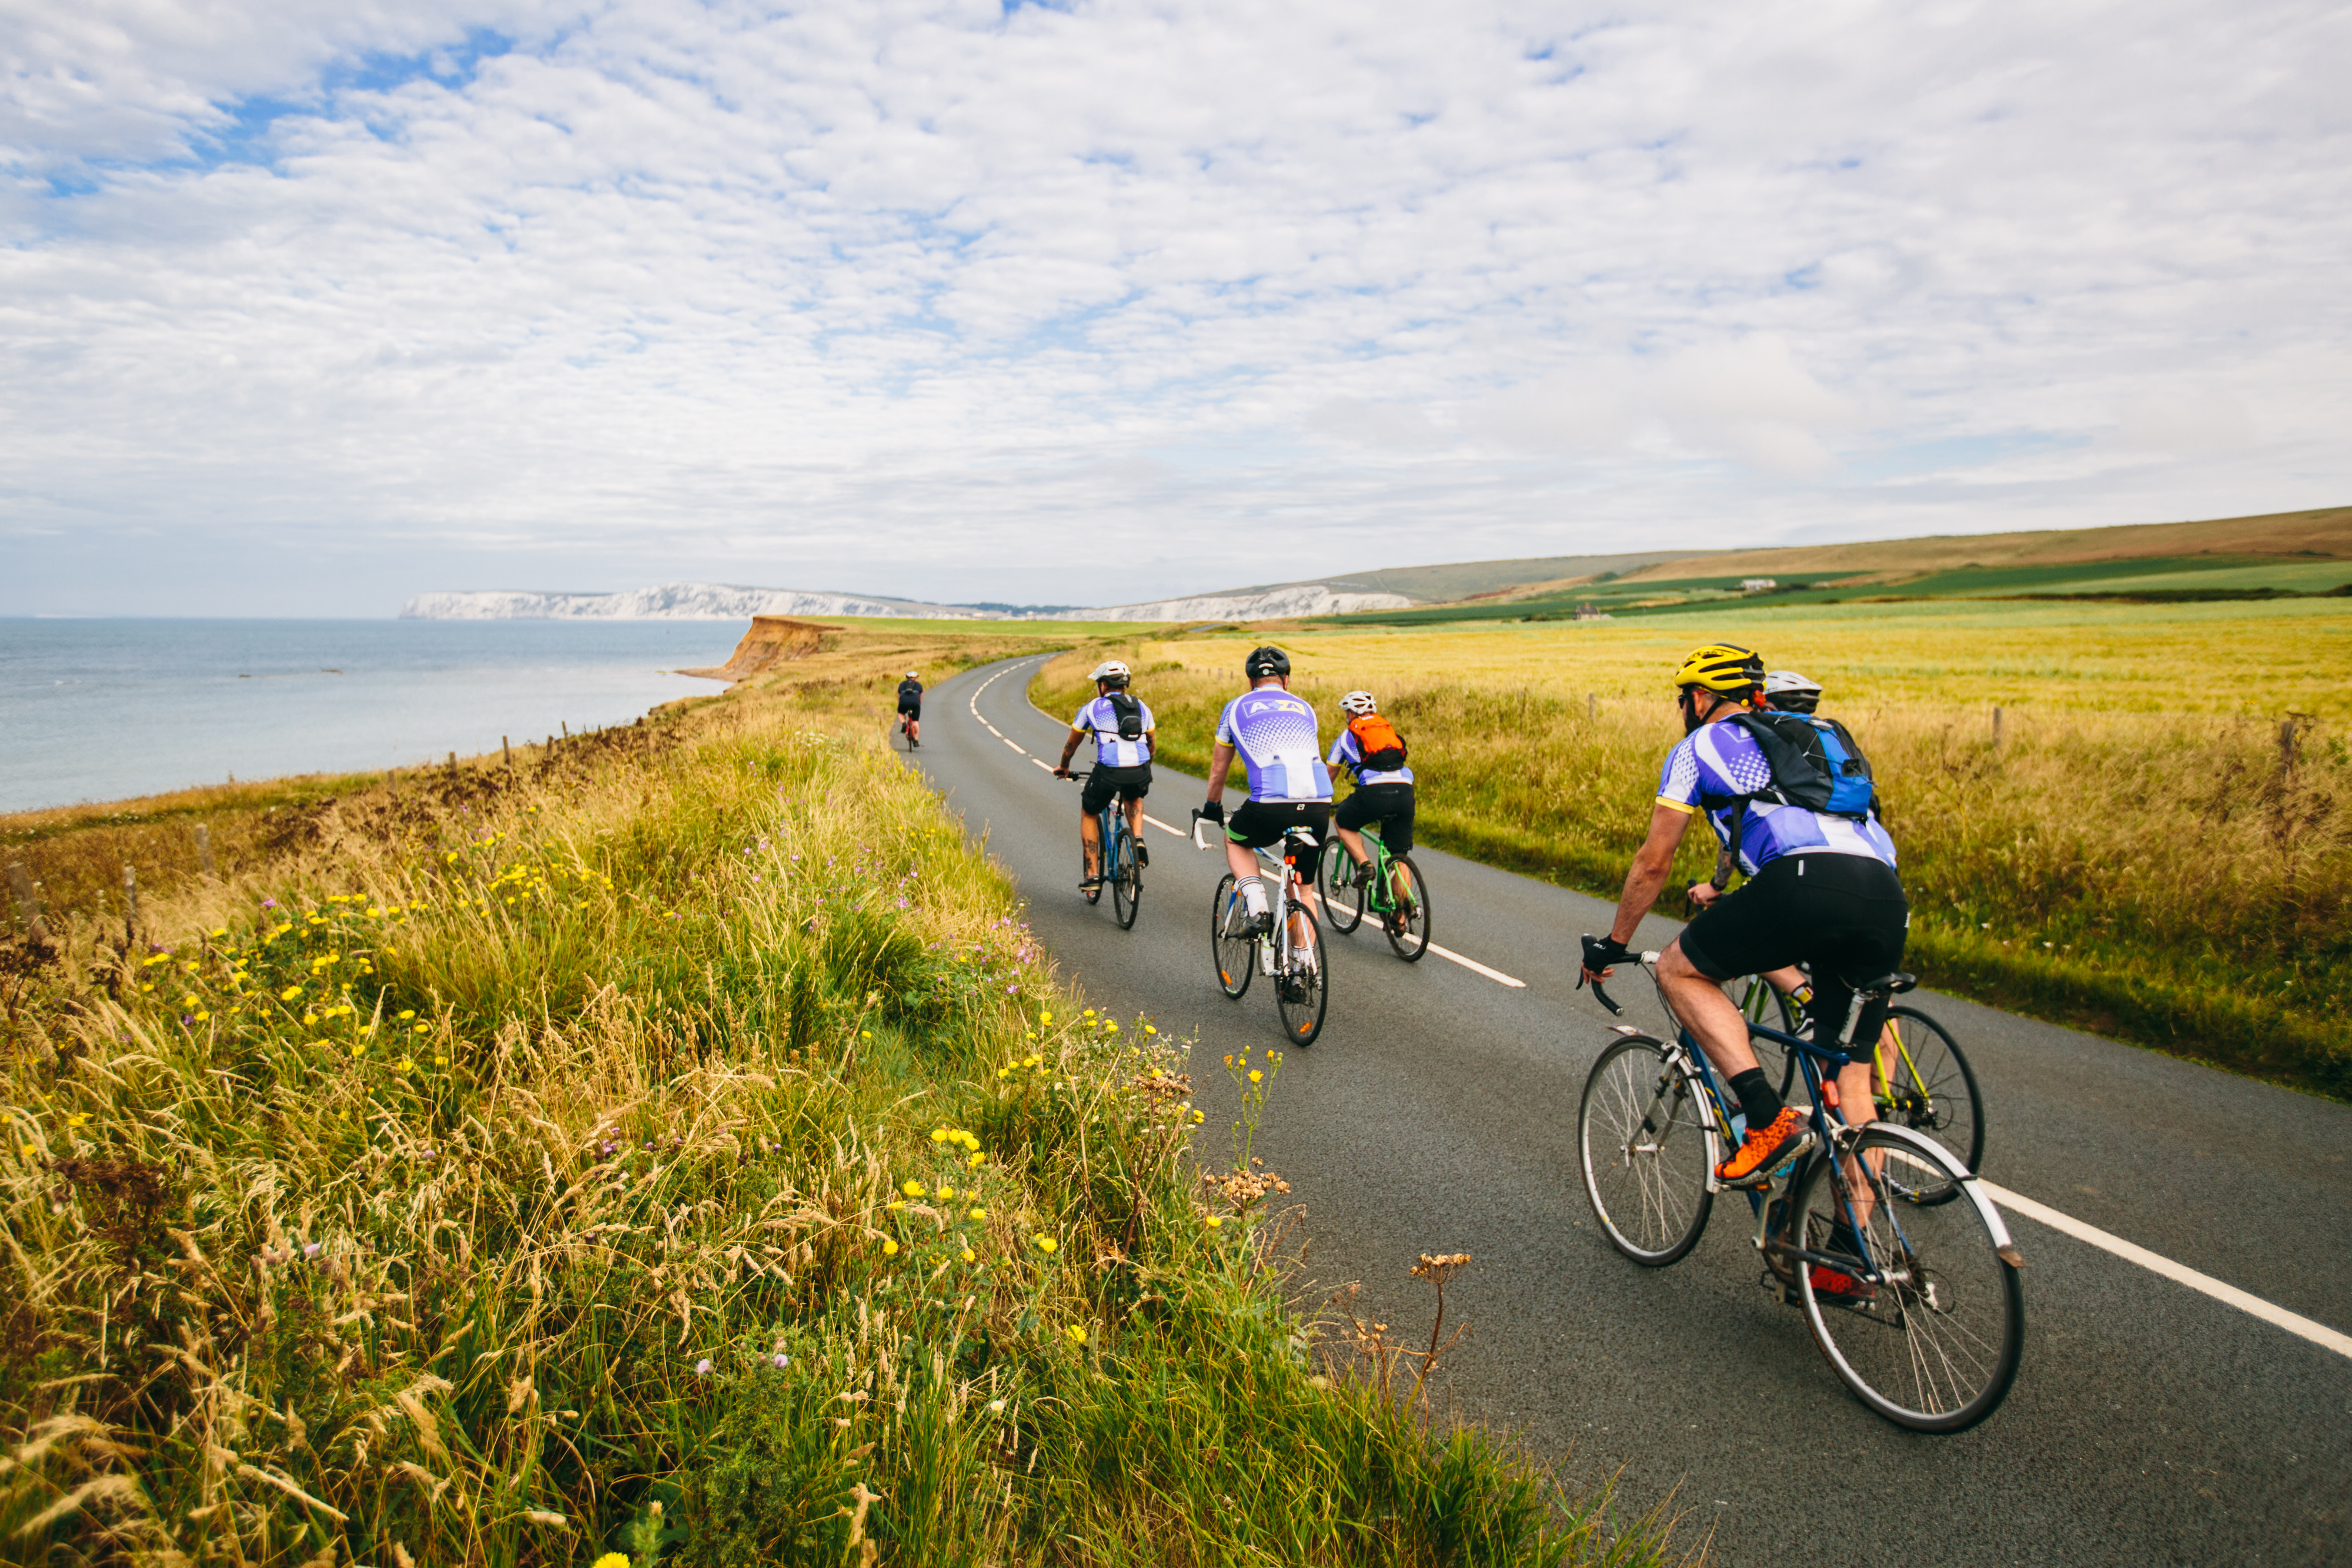 Isle of Wight Cyclists